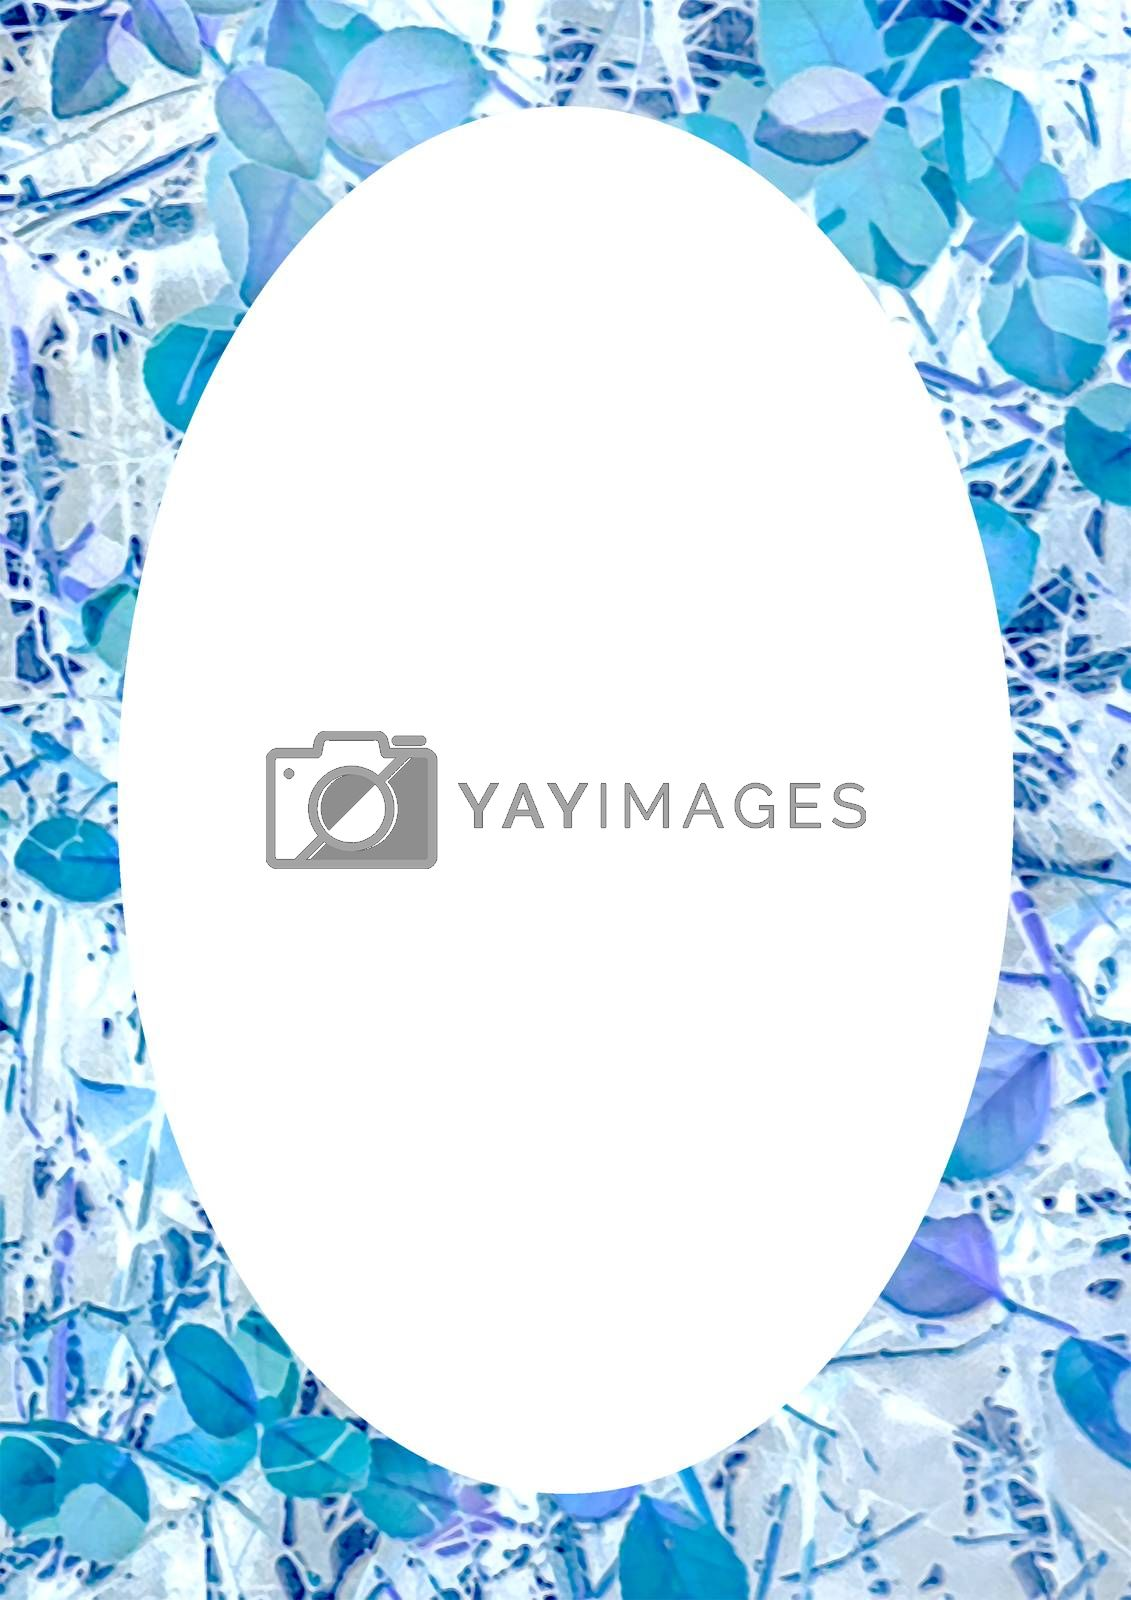 White Frame With Nature Patterned Rounded Edges by DanFLCreative